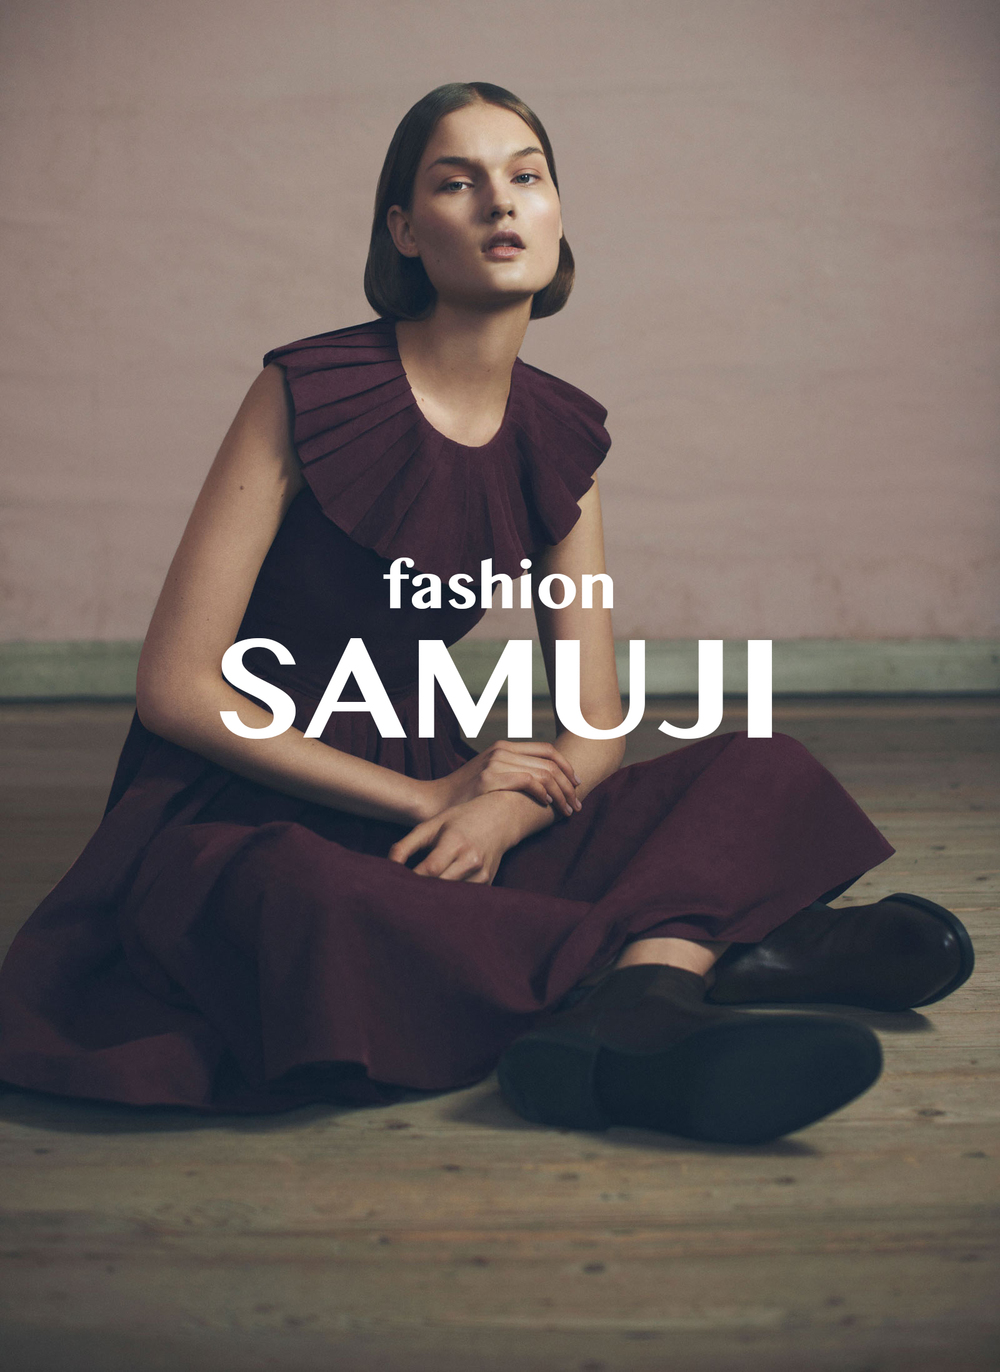 SAMUJI CREATES TIMELESS PIECES MADE FROM JAPANESE AND EUROPEAN FABRICS January, 20, 2016